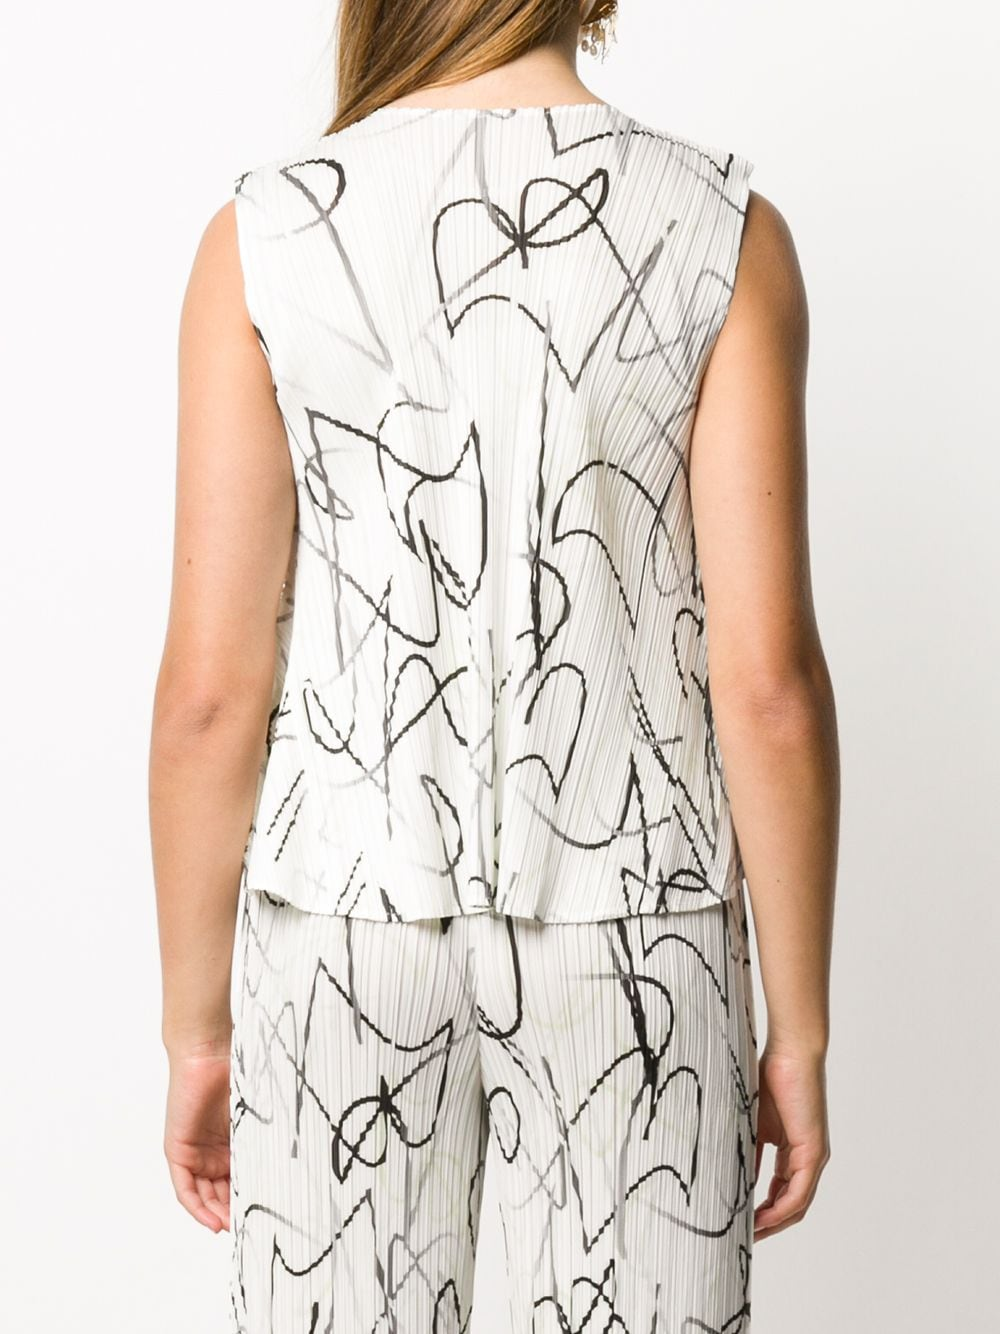 Picture of Issey Miyake Pleats Please | Conductor Micro-Pleated Top